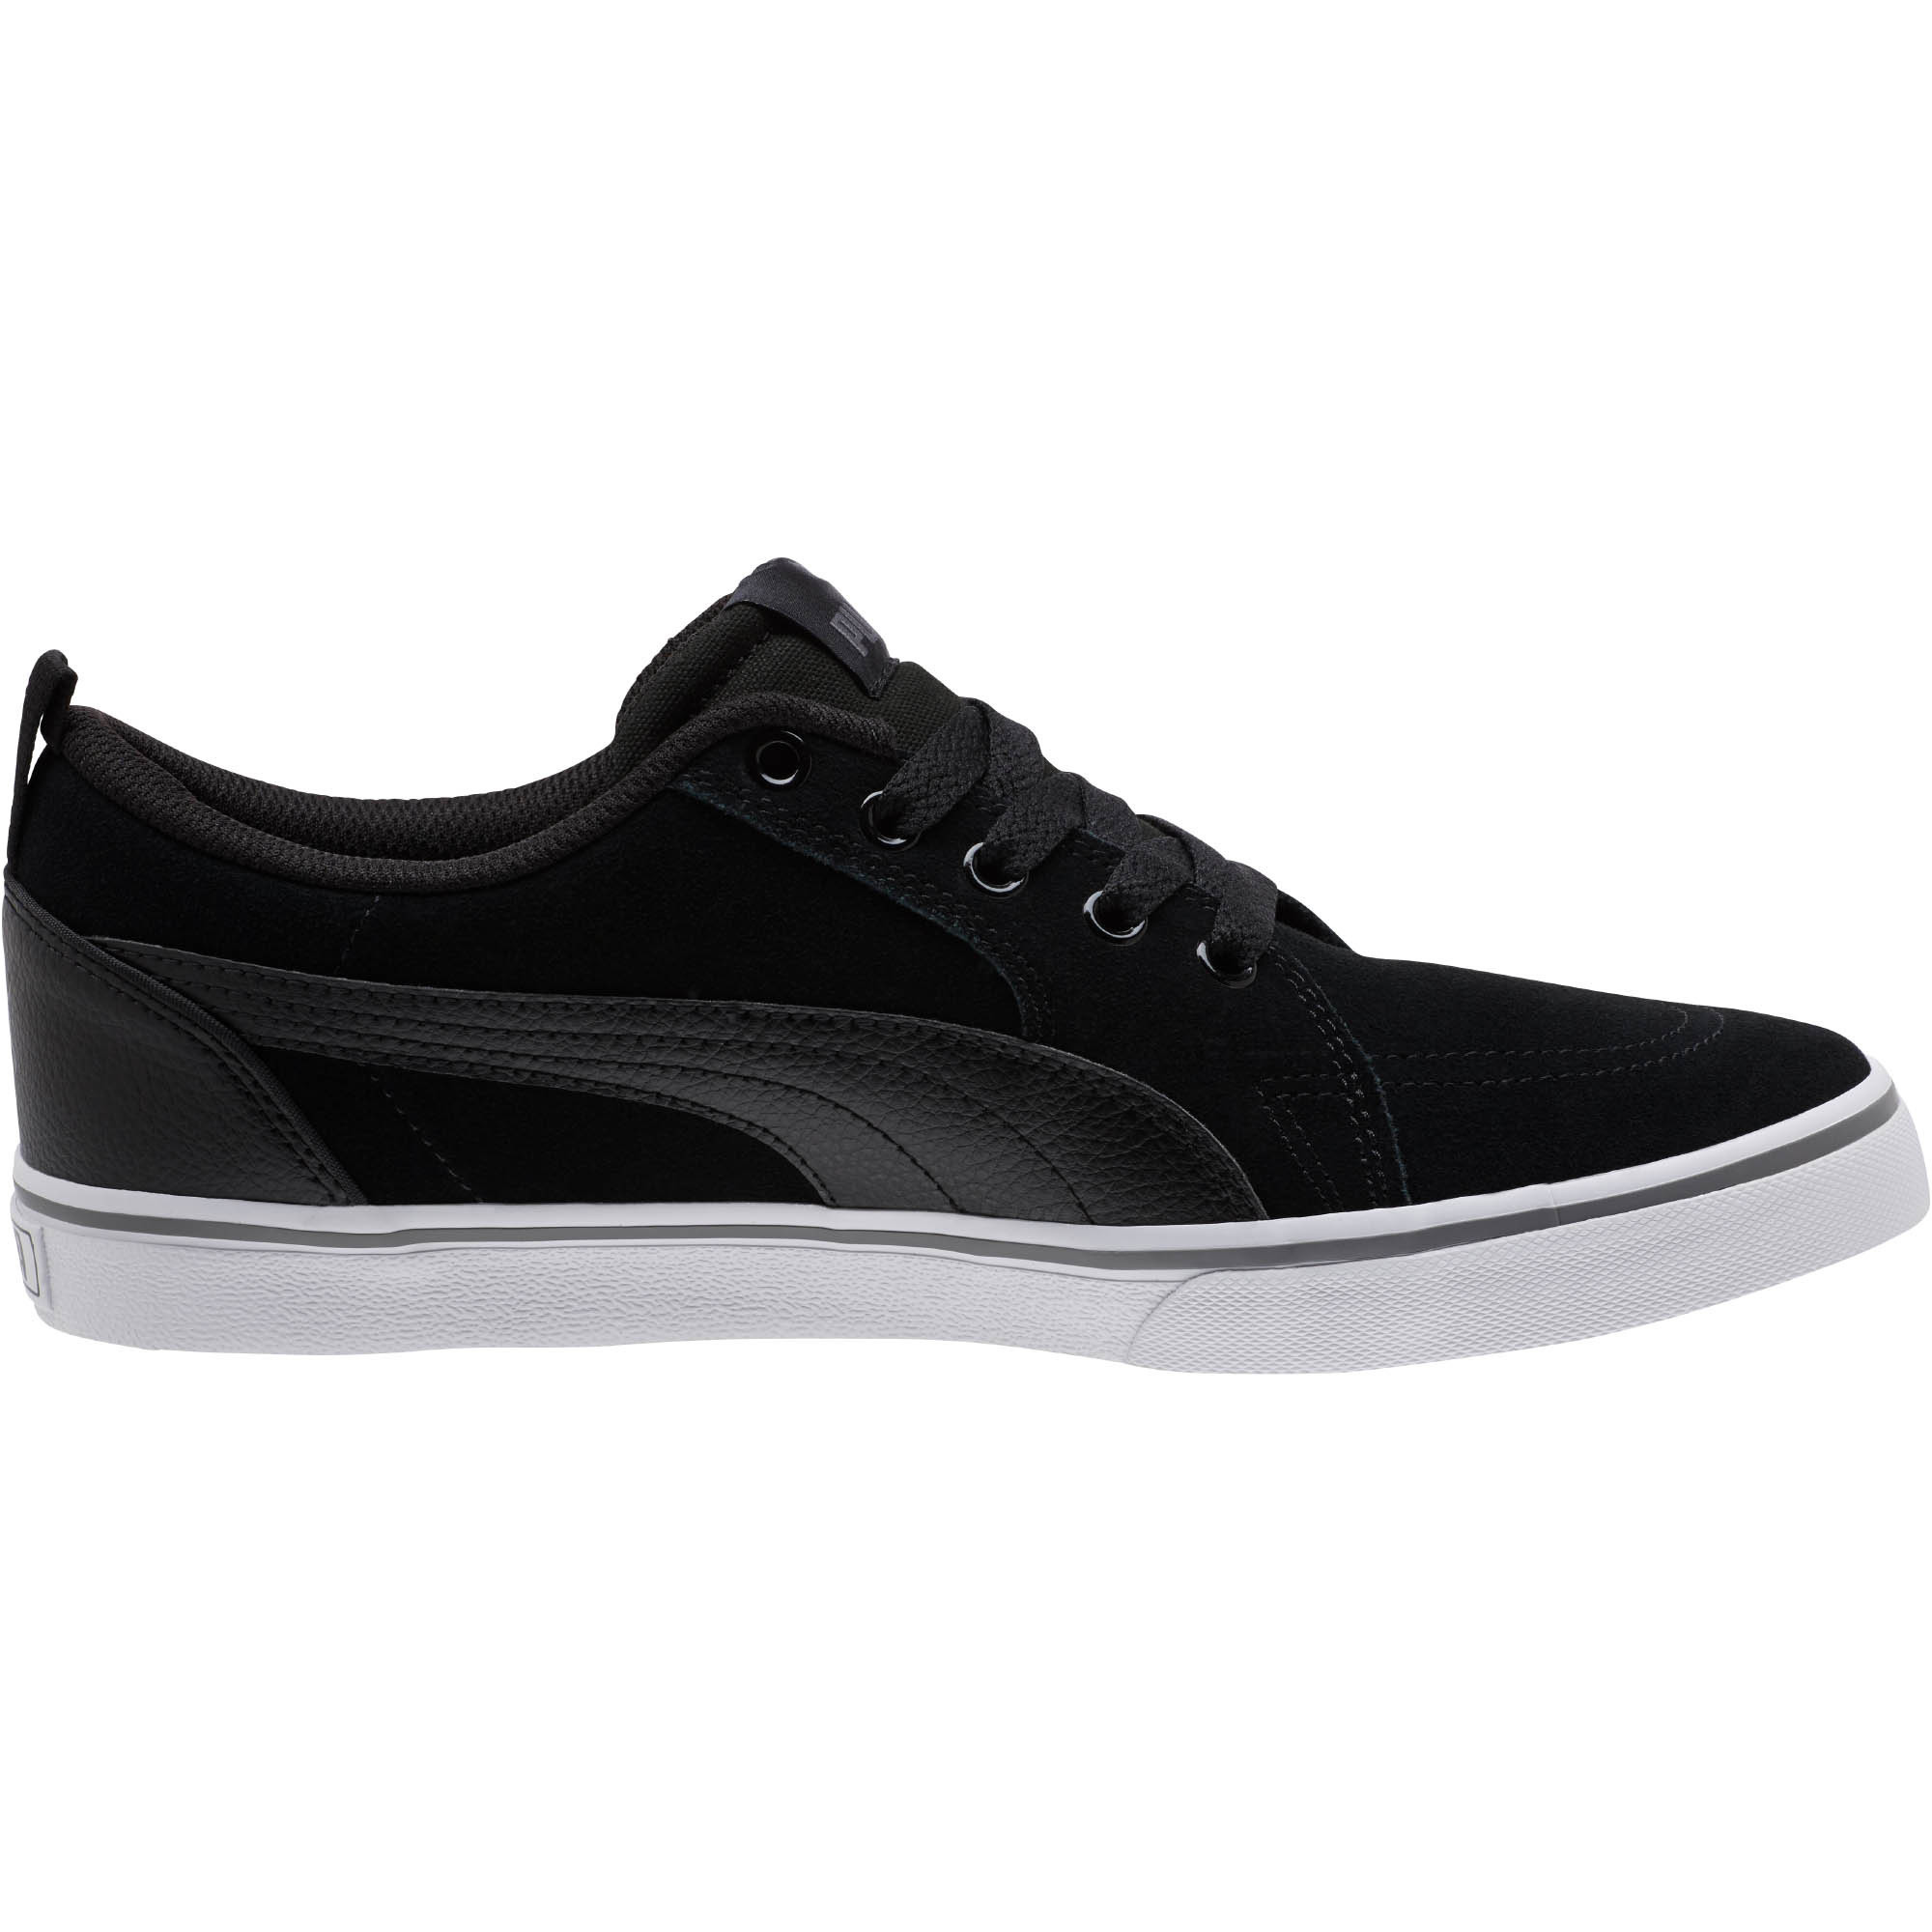 PUMA-Puma-Bridger-SD-Men-039-s-Sneakers-Men-Shoe-Basics thumbnail 10